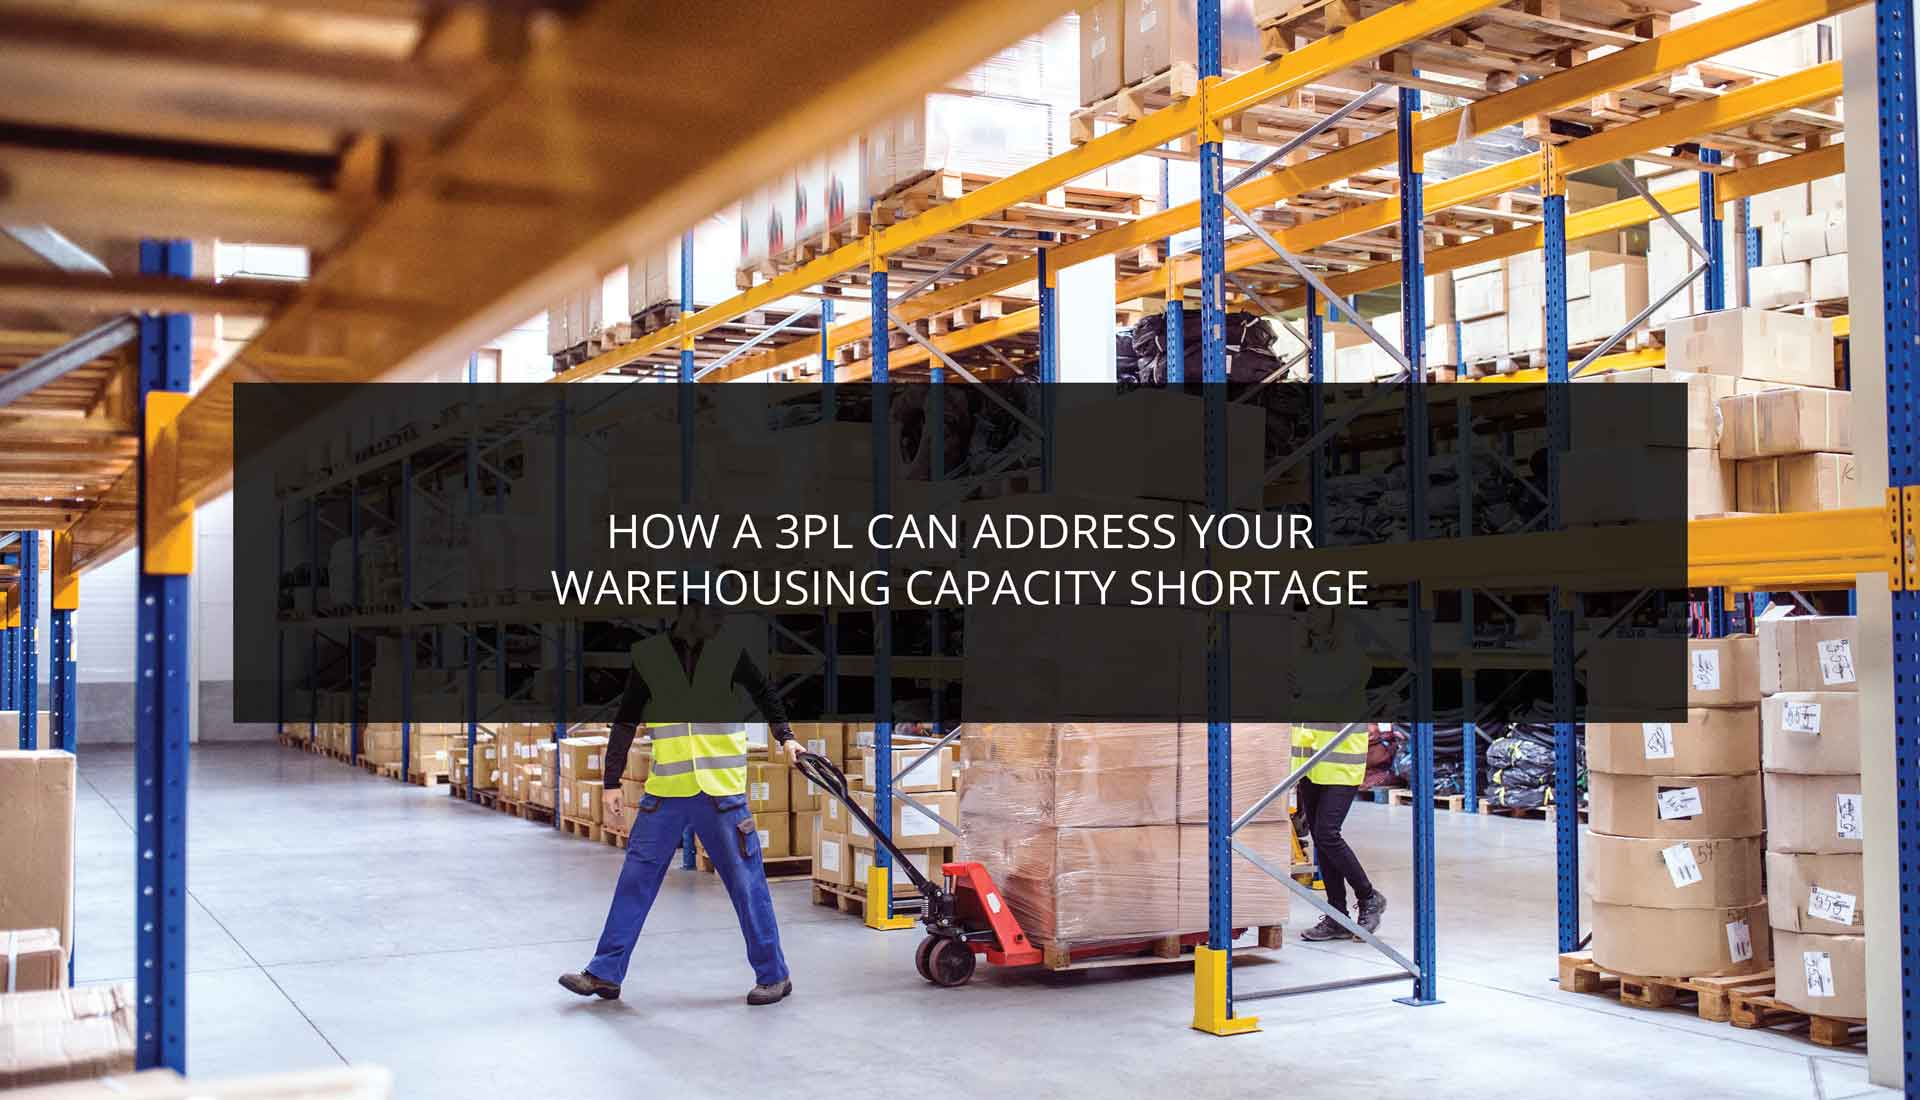 How a 3PL Can Address Your Warehousing Capacity Shortage